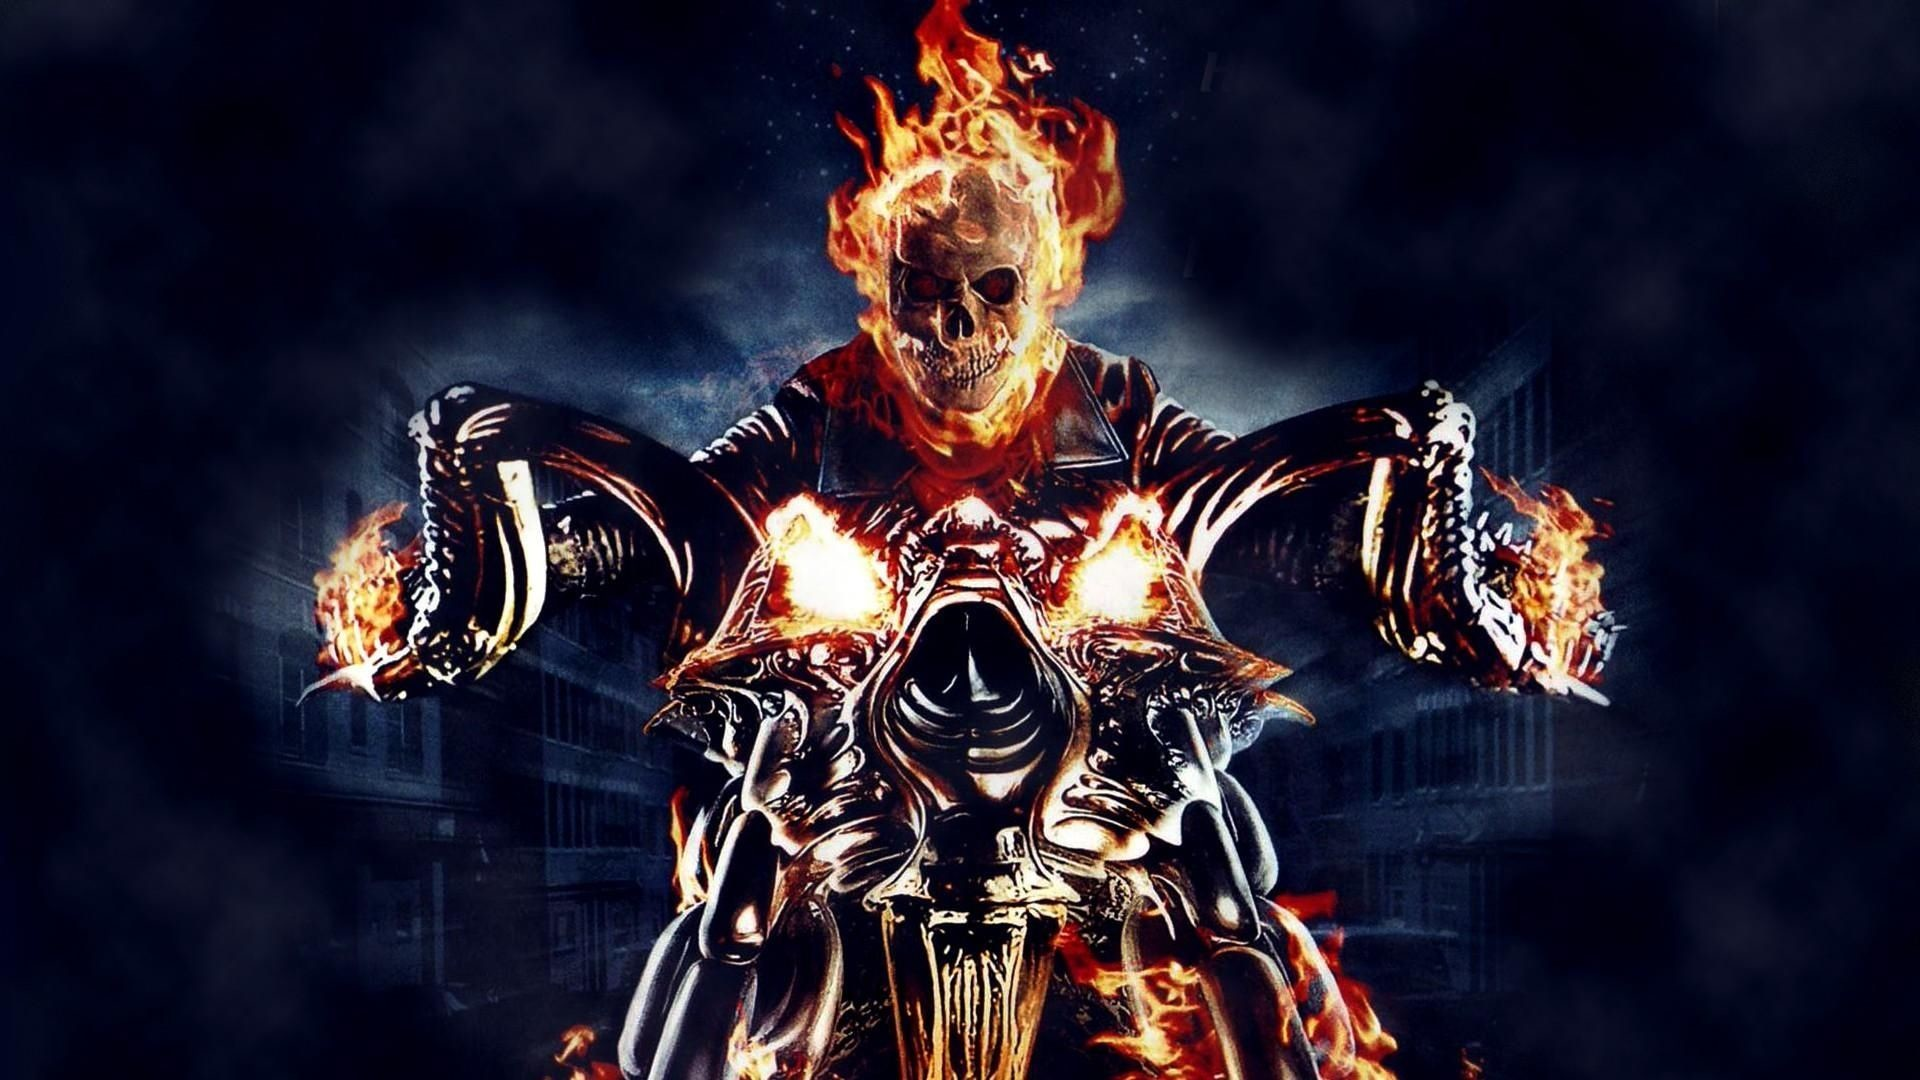 Download Wallpaper Ghost rider, Motorcycle, Fire, Skull .